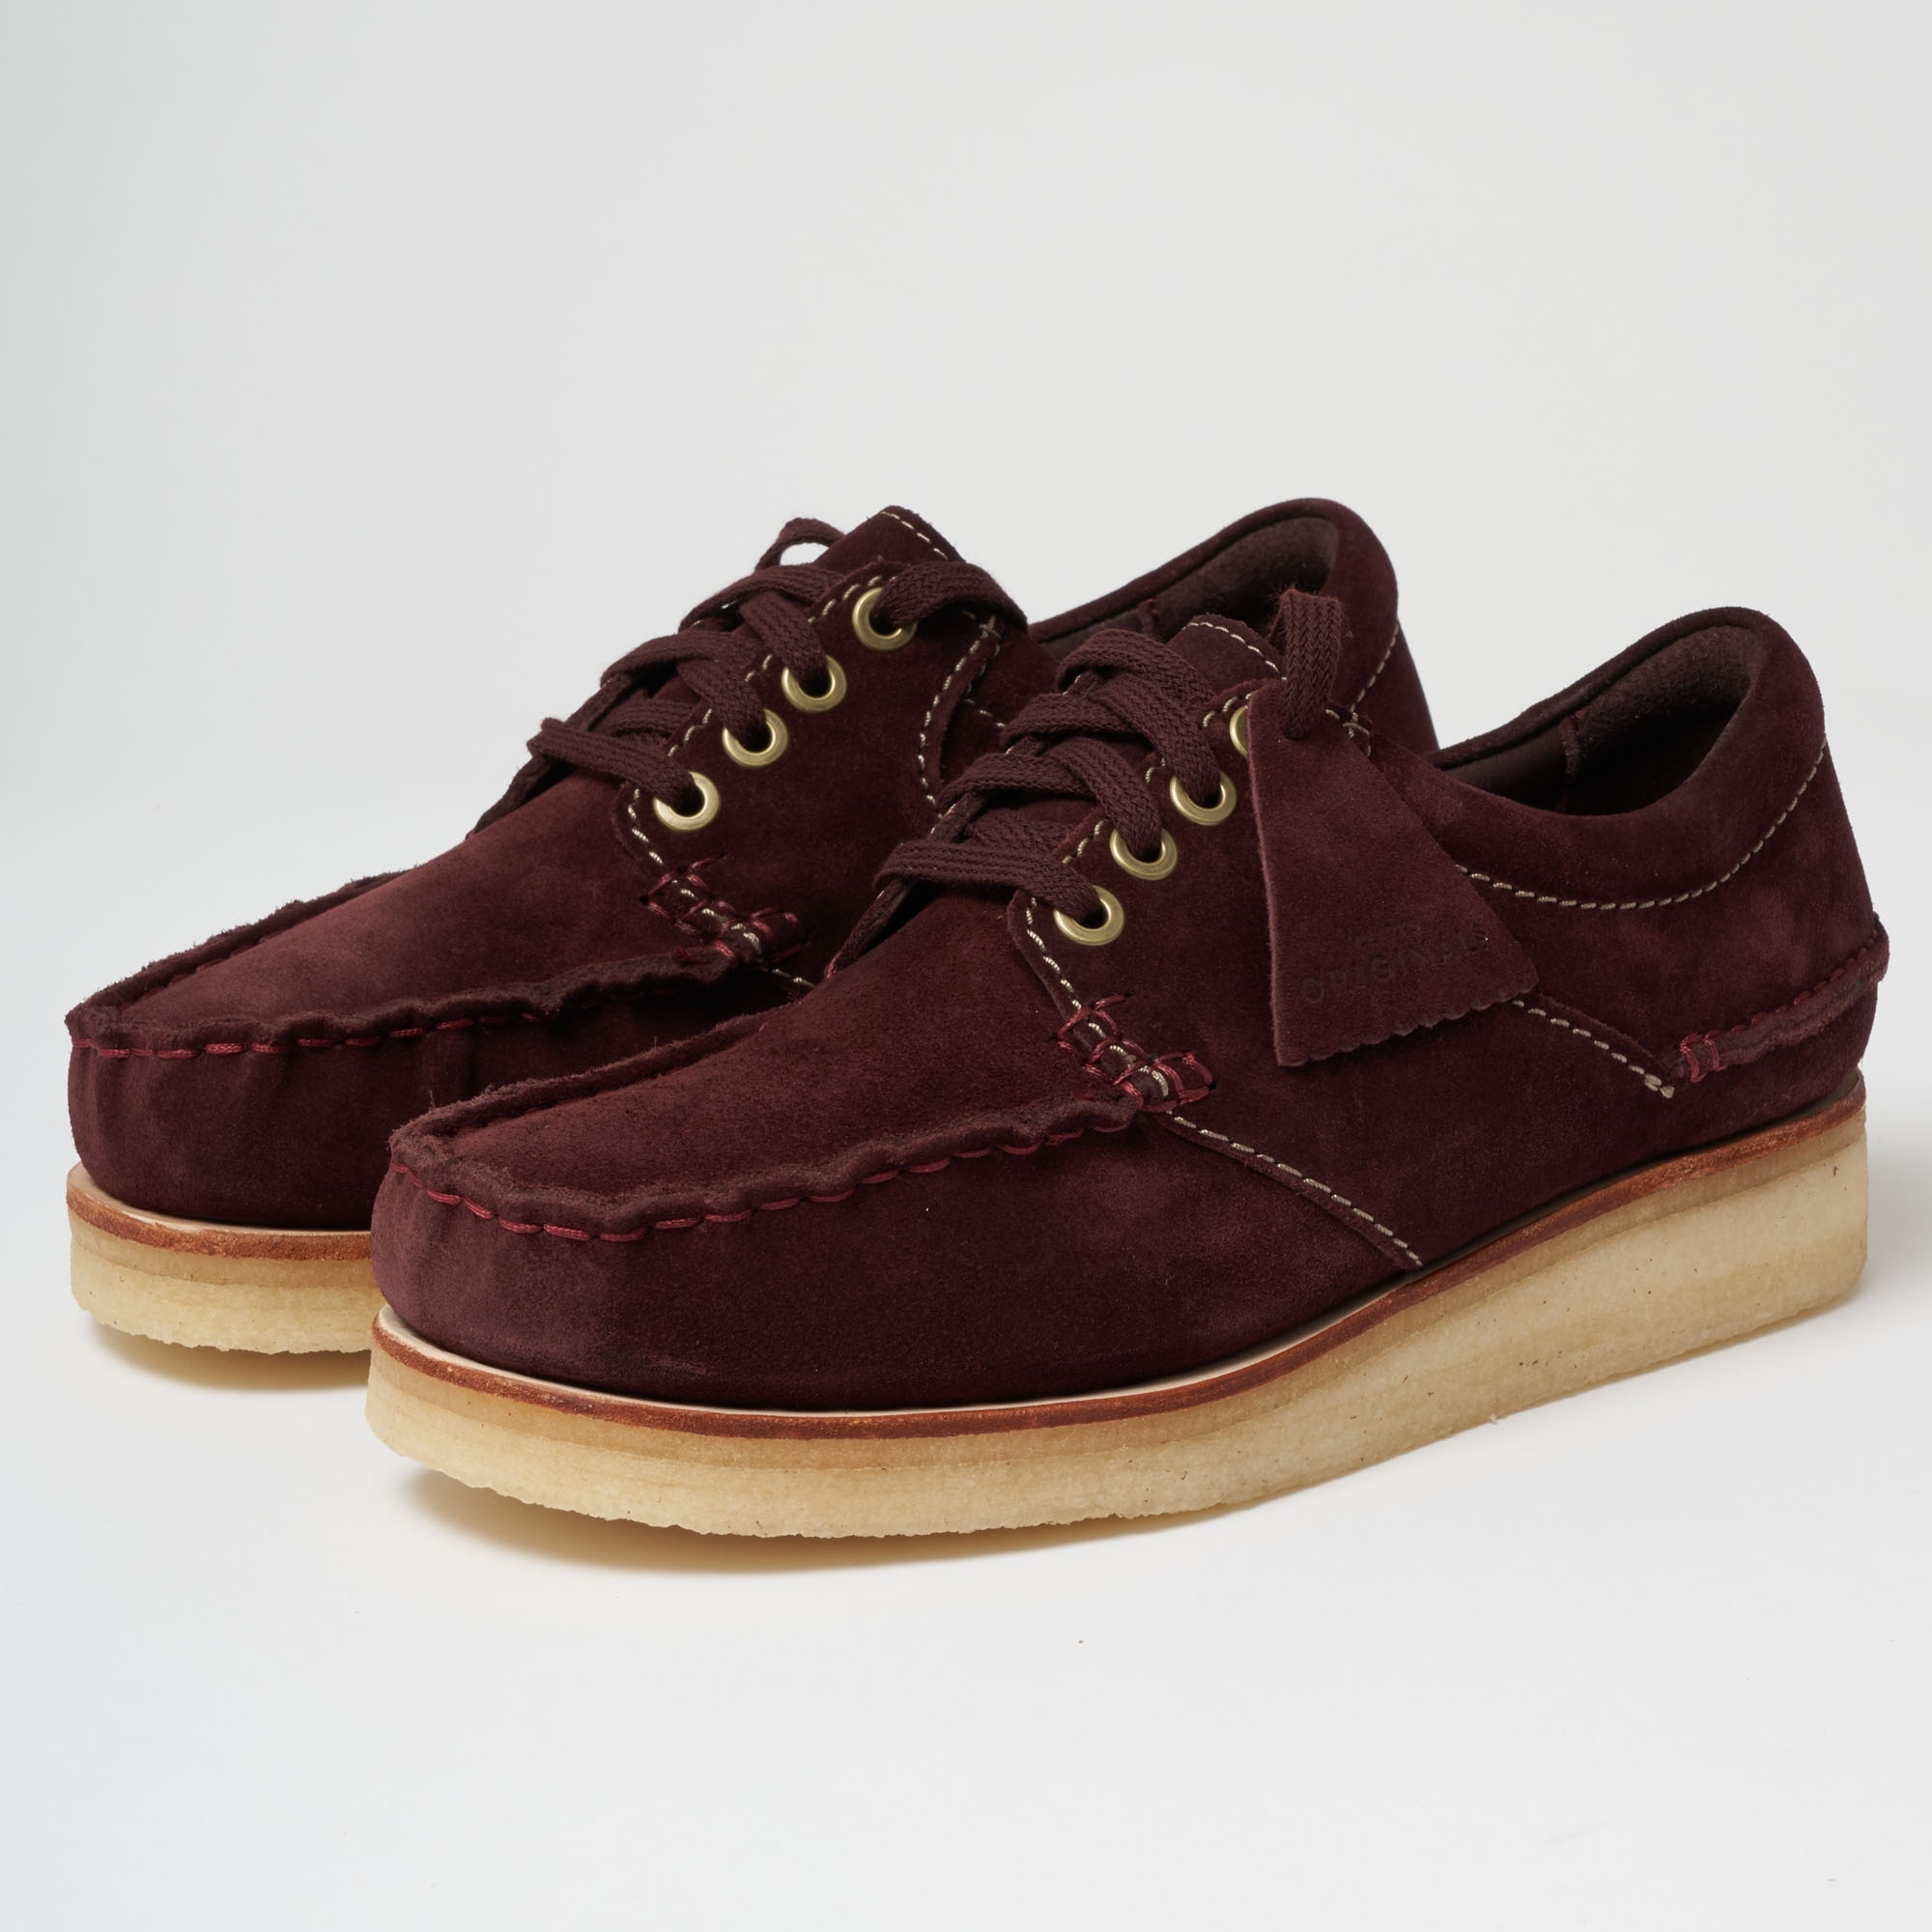 1bda681e Wallace Shoes - Burgundy